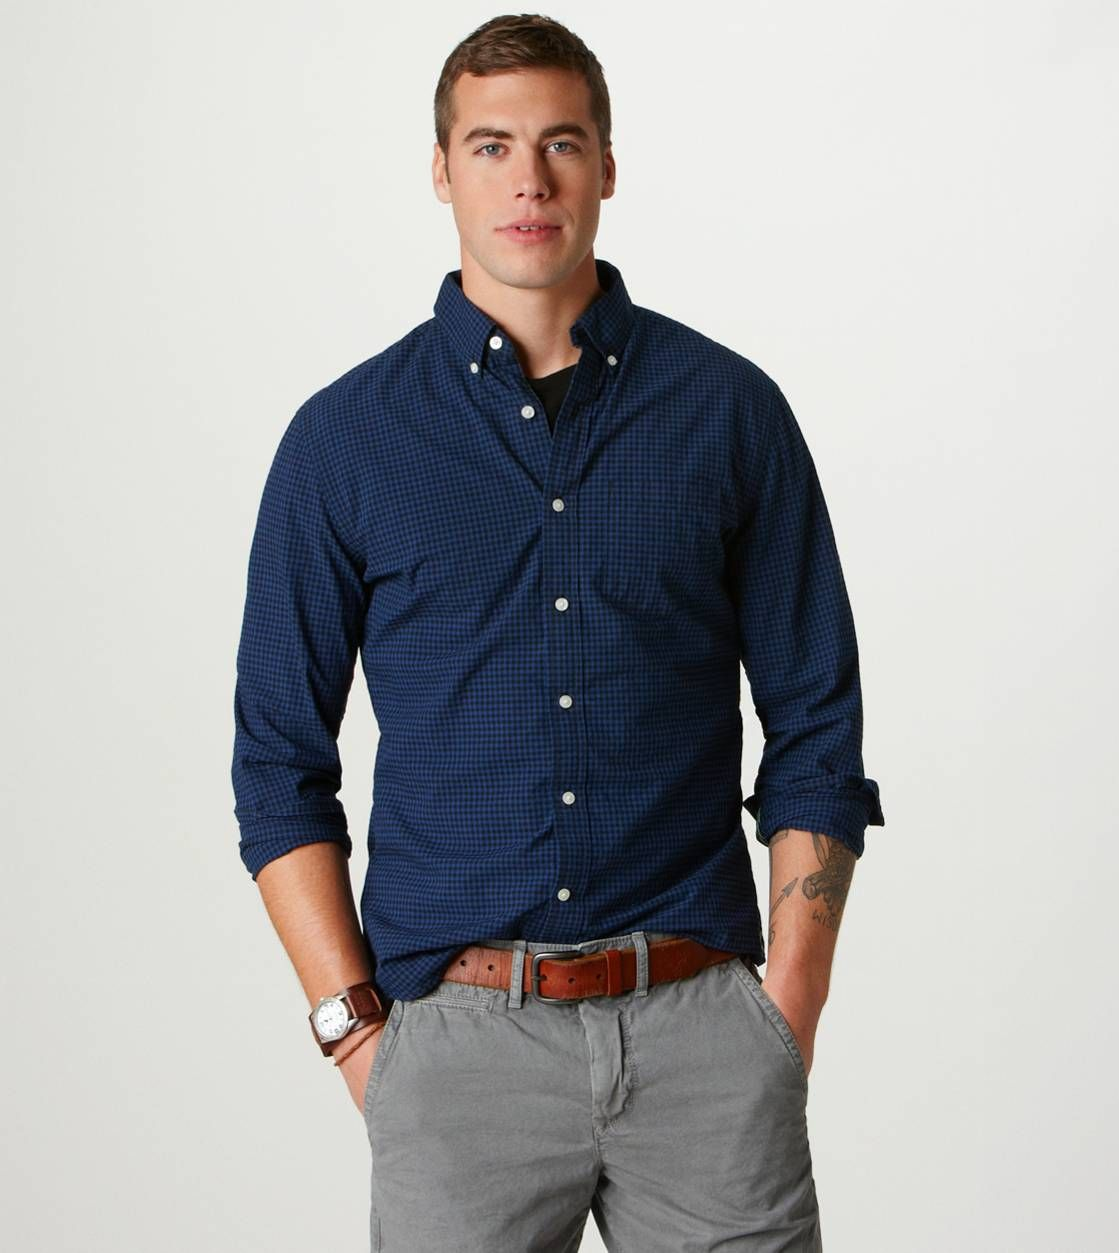 Ae plaid button down in blue goes great with grey pants for What color shirt goes with brown pants